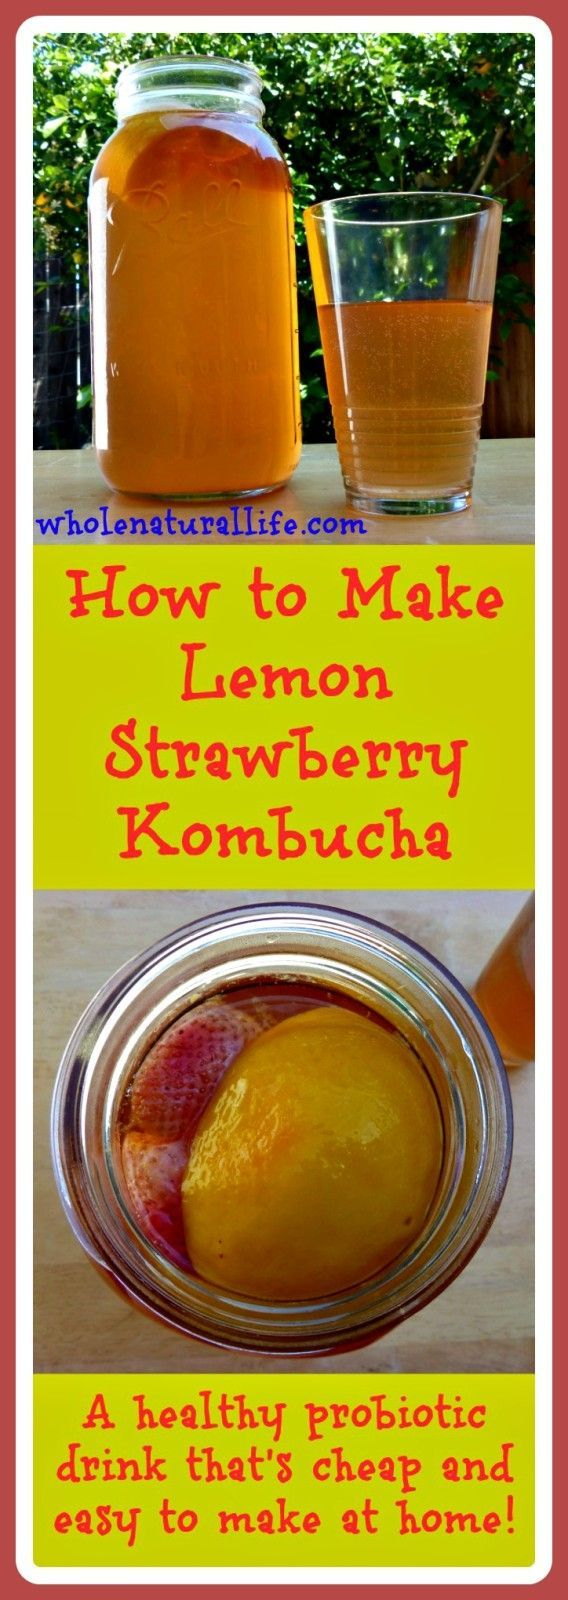 Lemon Strawberry Kombucha: A healthy and delicious probiotic drink that's cheap and easy to make at home!